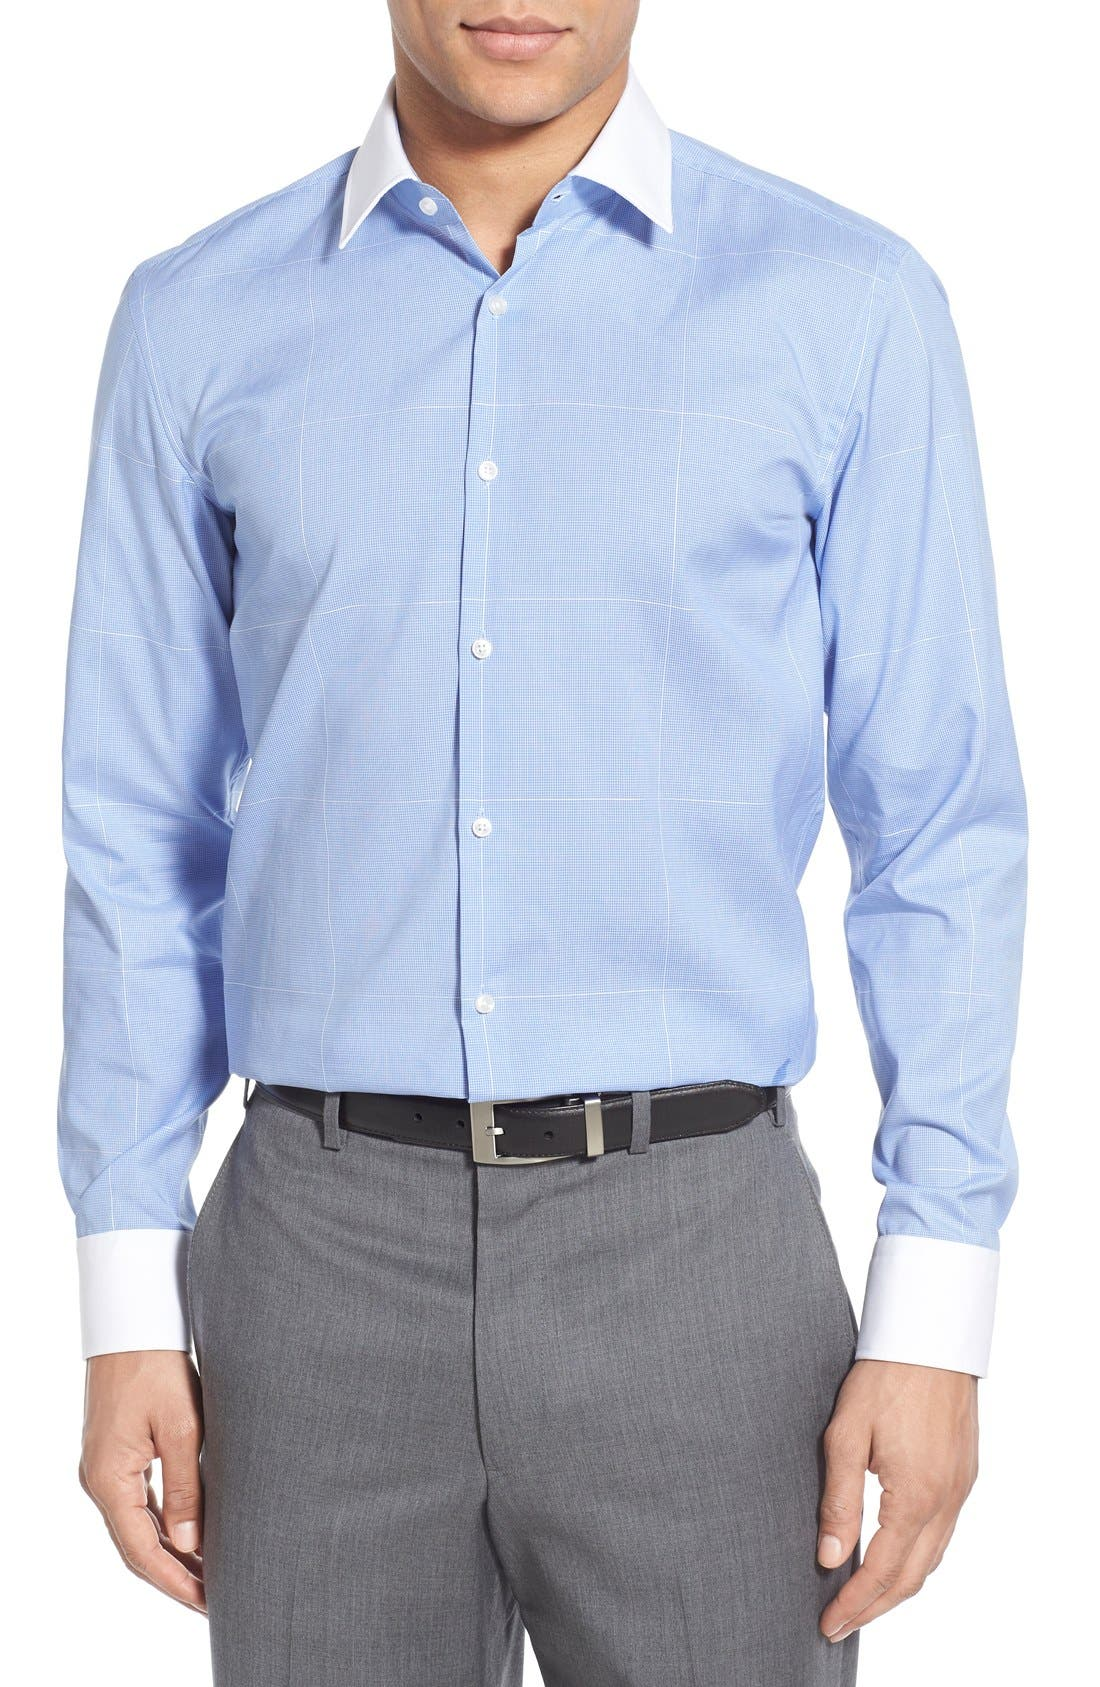 Alternate Image 2  - BOSS WW Slim Fit Easy Iron Check Dress Shirt